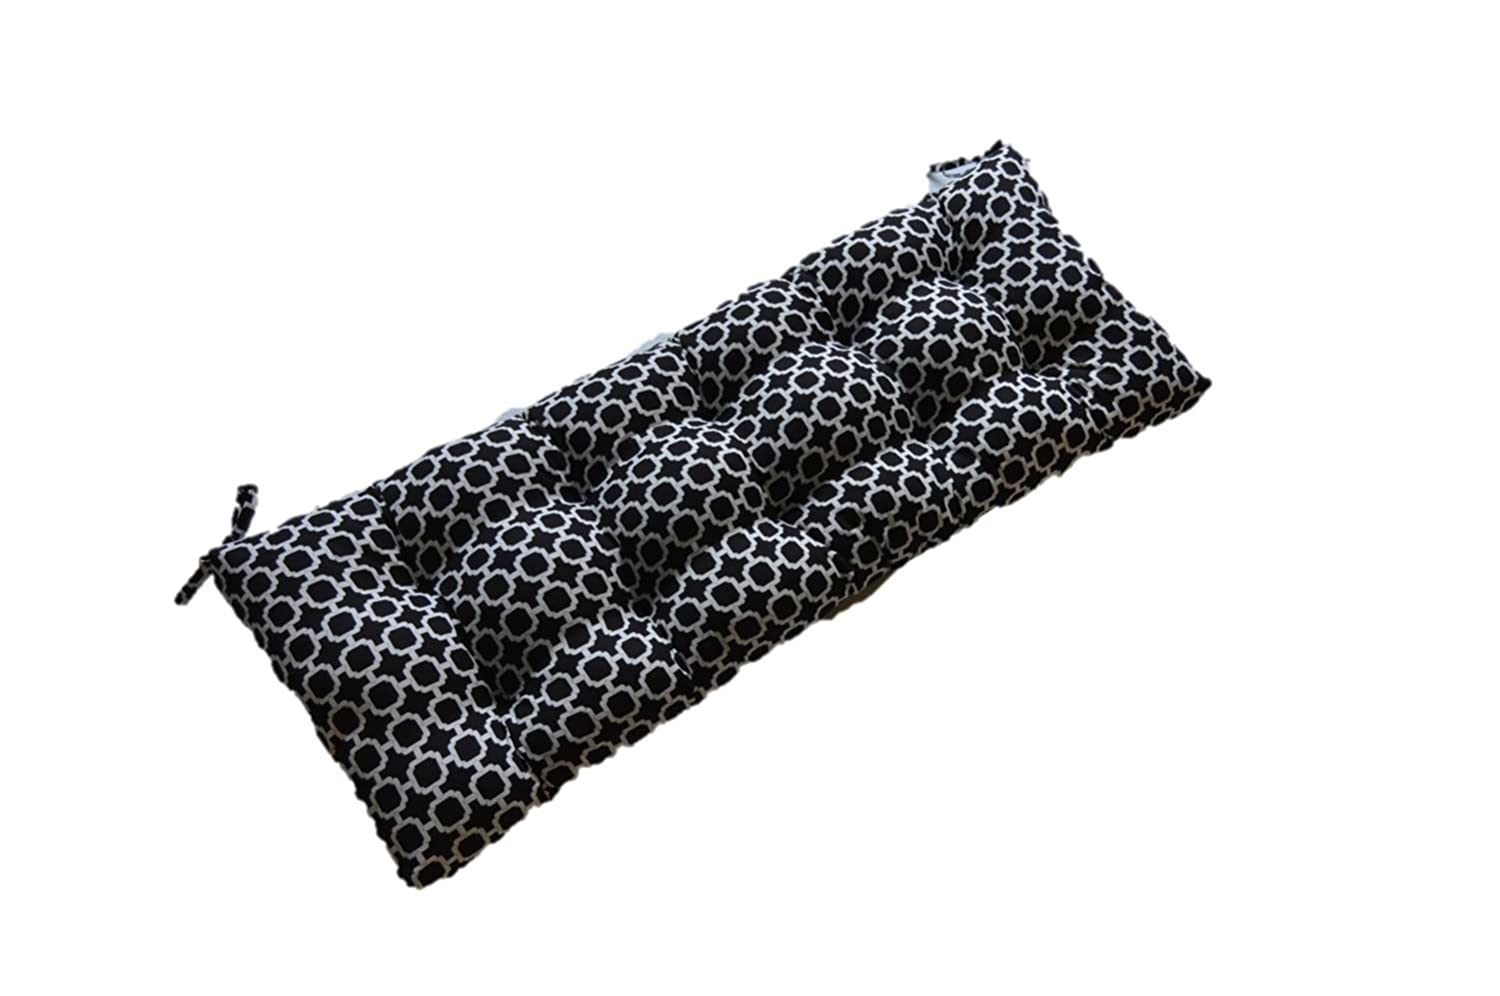 Black and White Geometric Hockley Print Indoor Outdoor Tufted Cushion for Bench, Swing, Glider – Choose Size 60 x 18